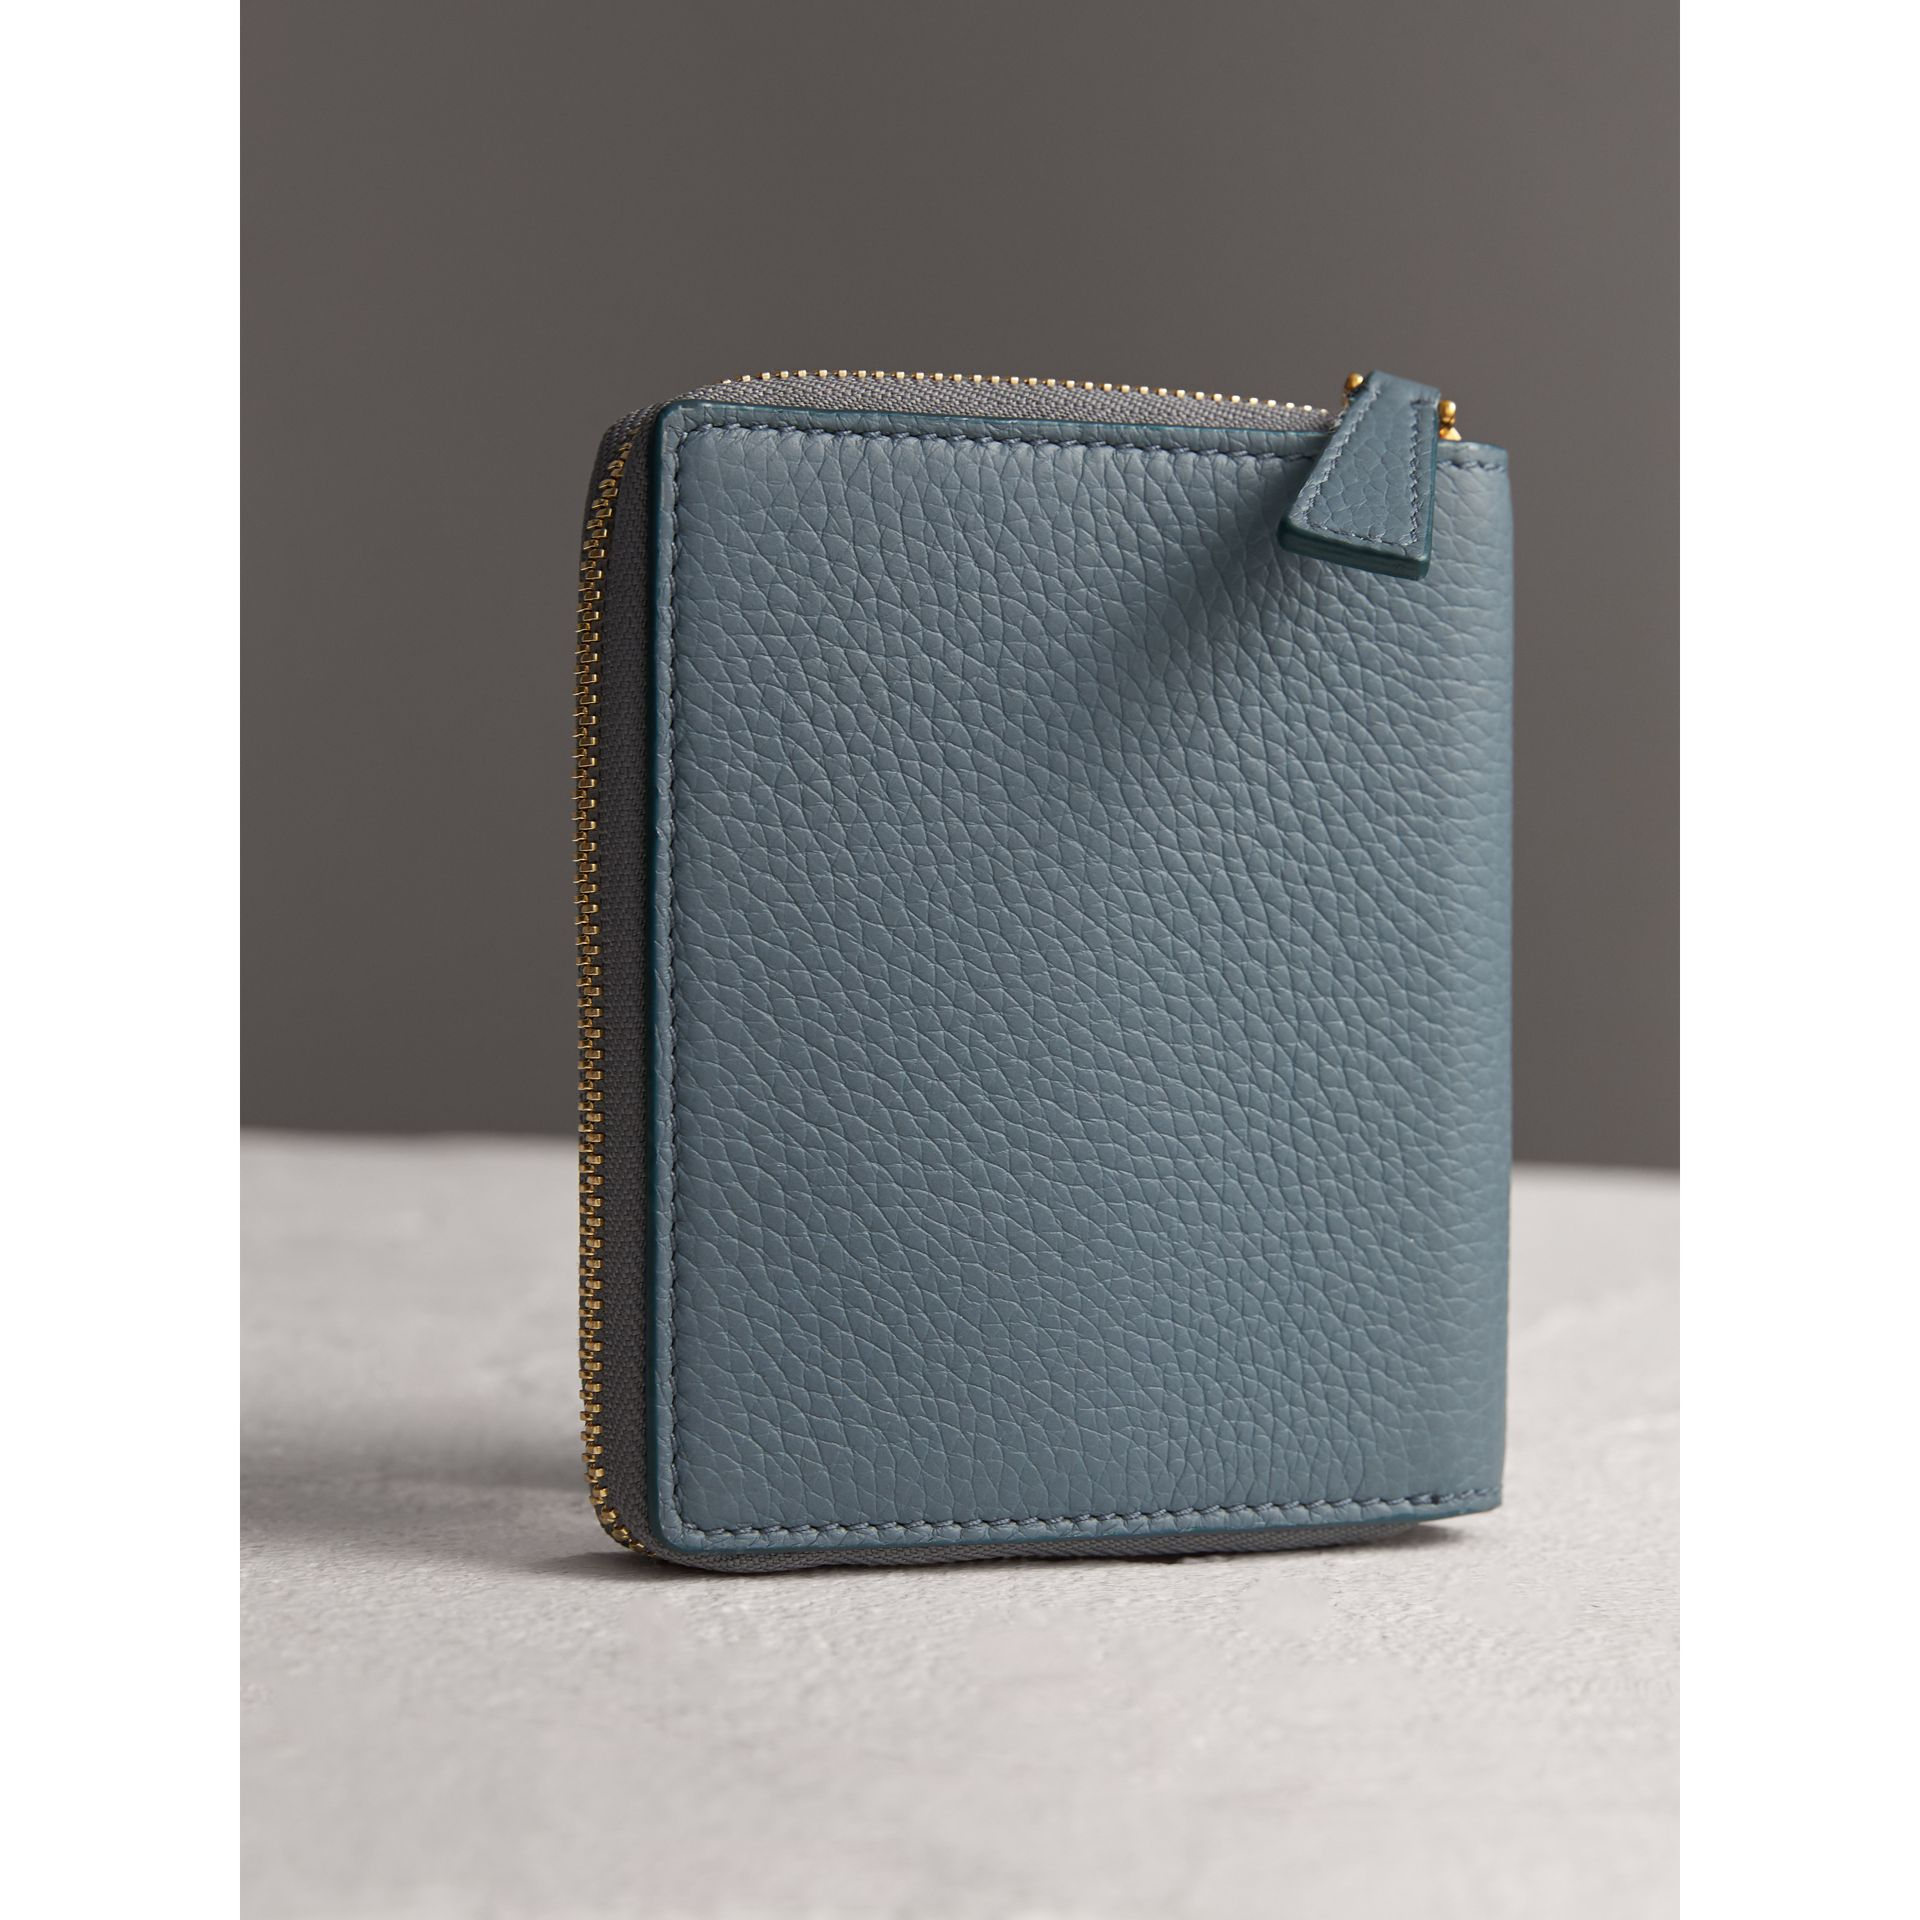 Embossed Grainy Leather Ziparound A6 Notebook Case in Dusty Teal Blue | Burberry United Kingdom - gallery image 2